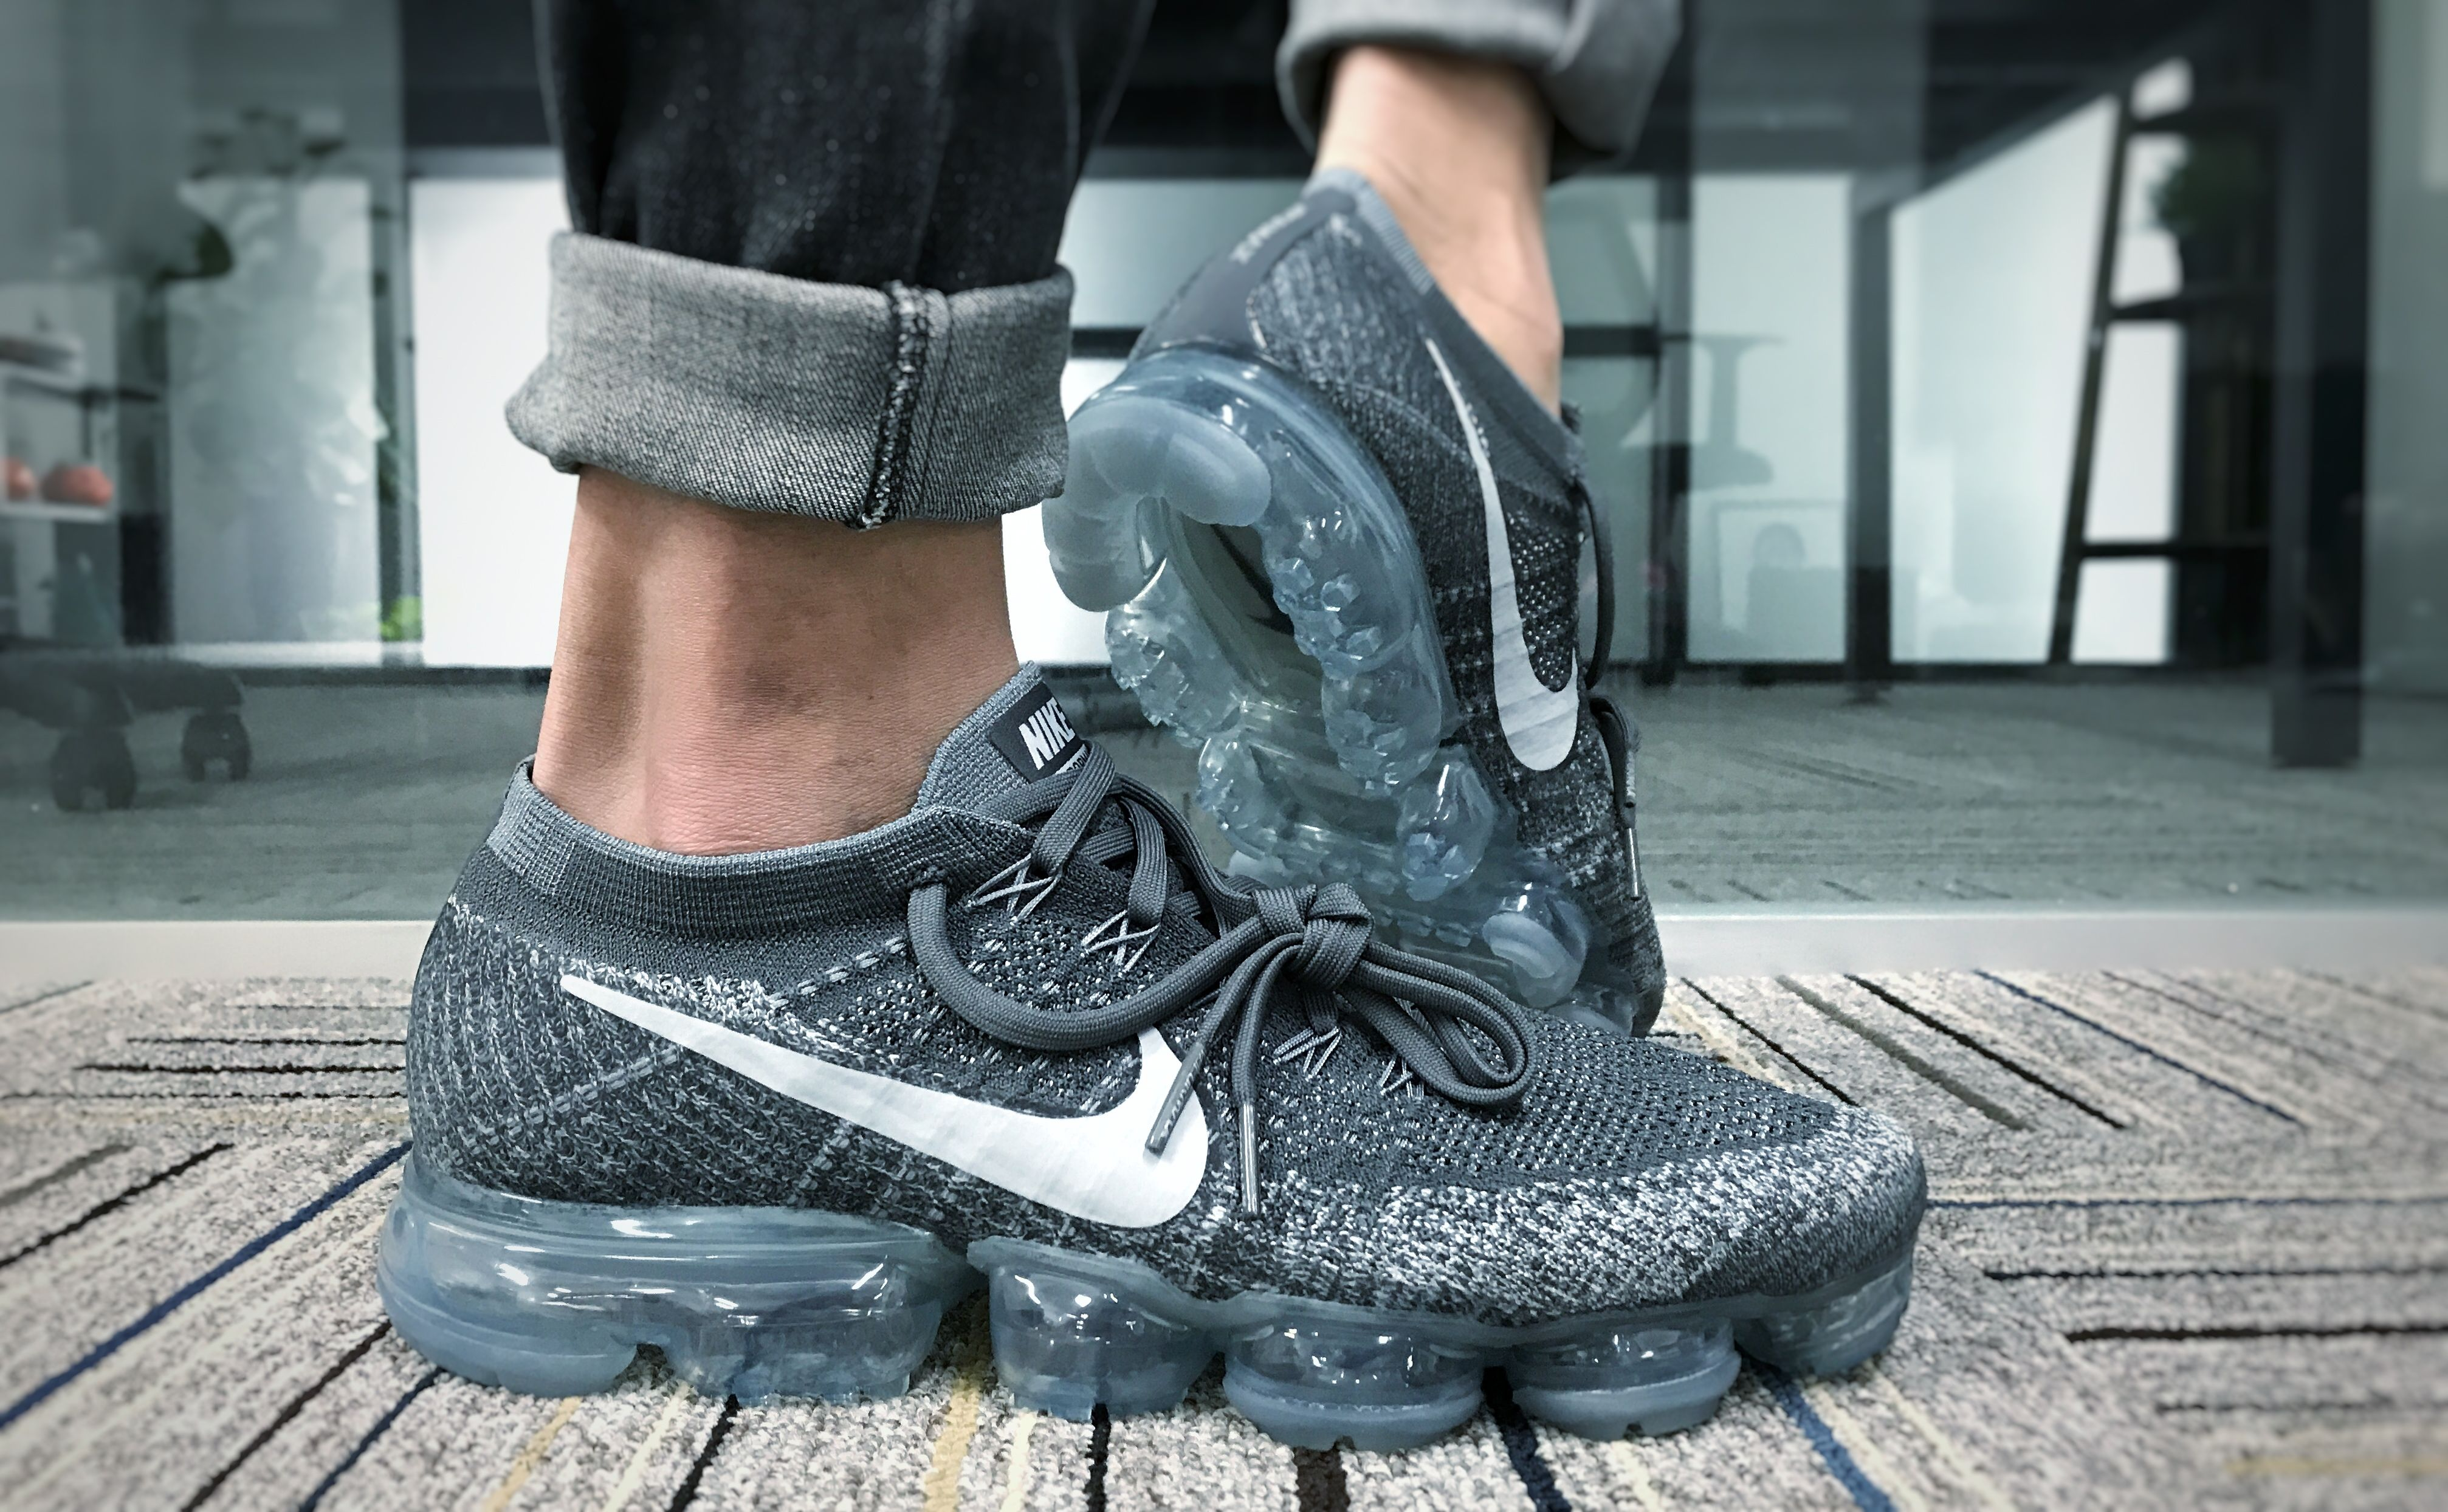 Nike Vapormax Asphalt - On-feet and Details